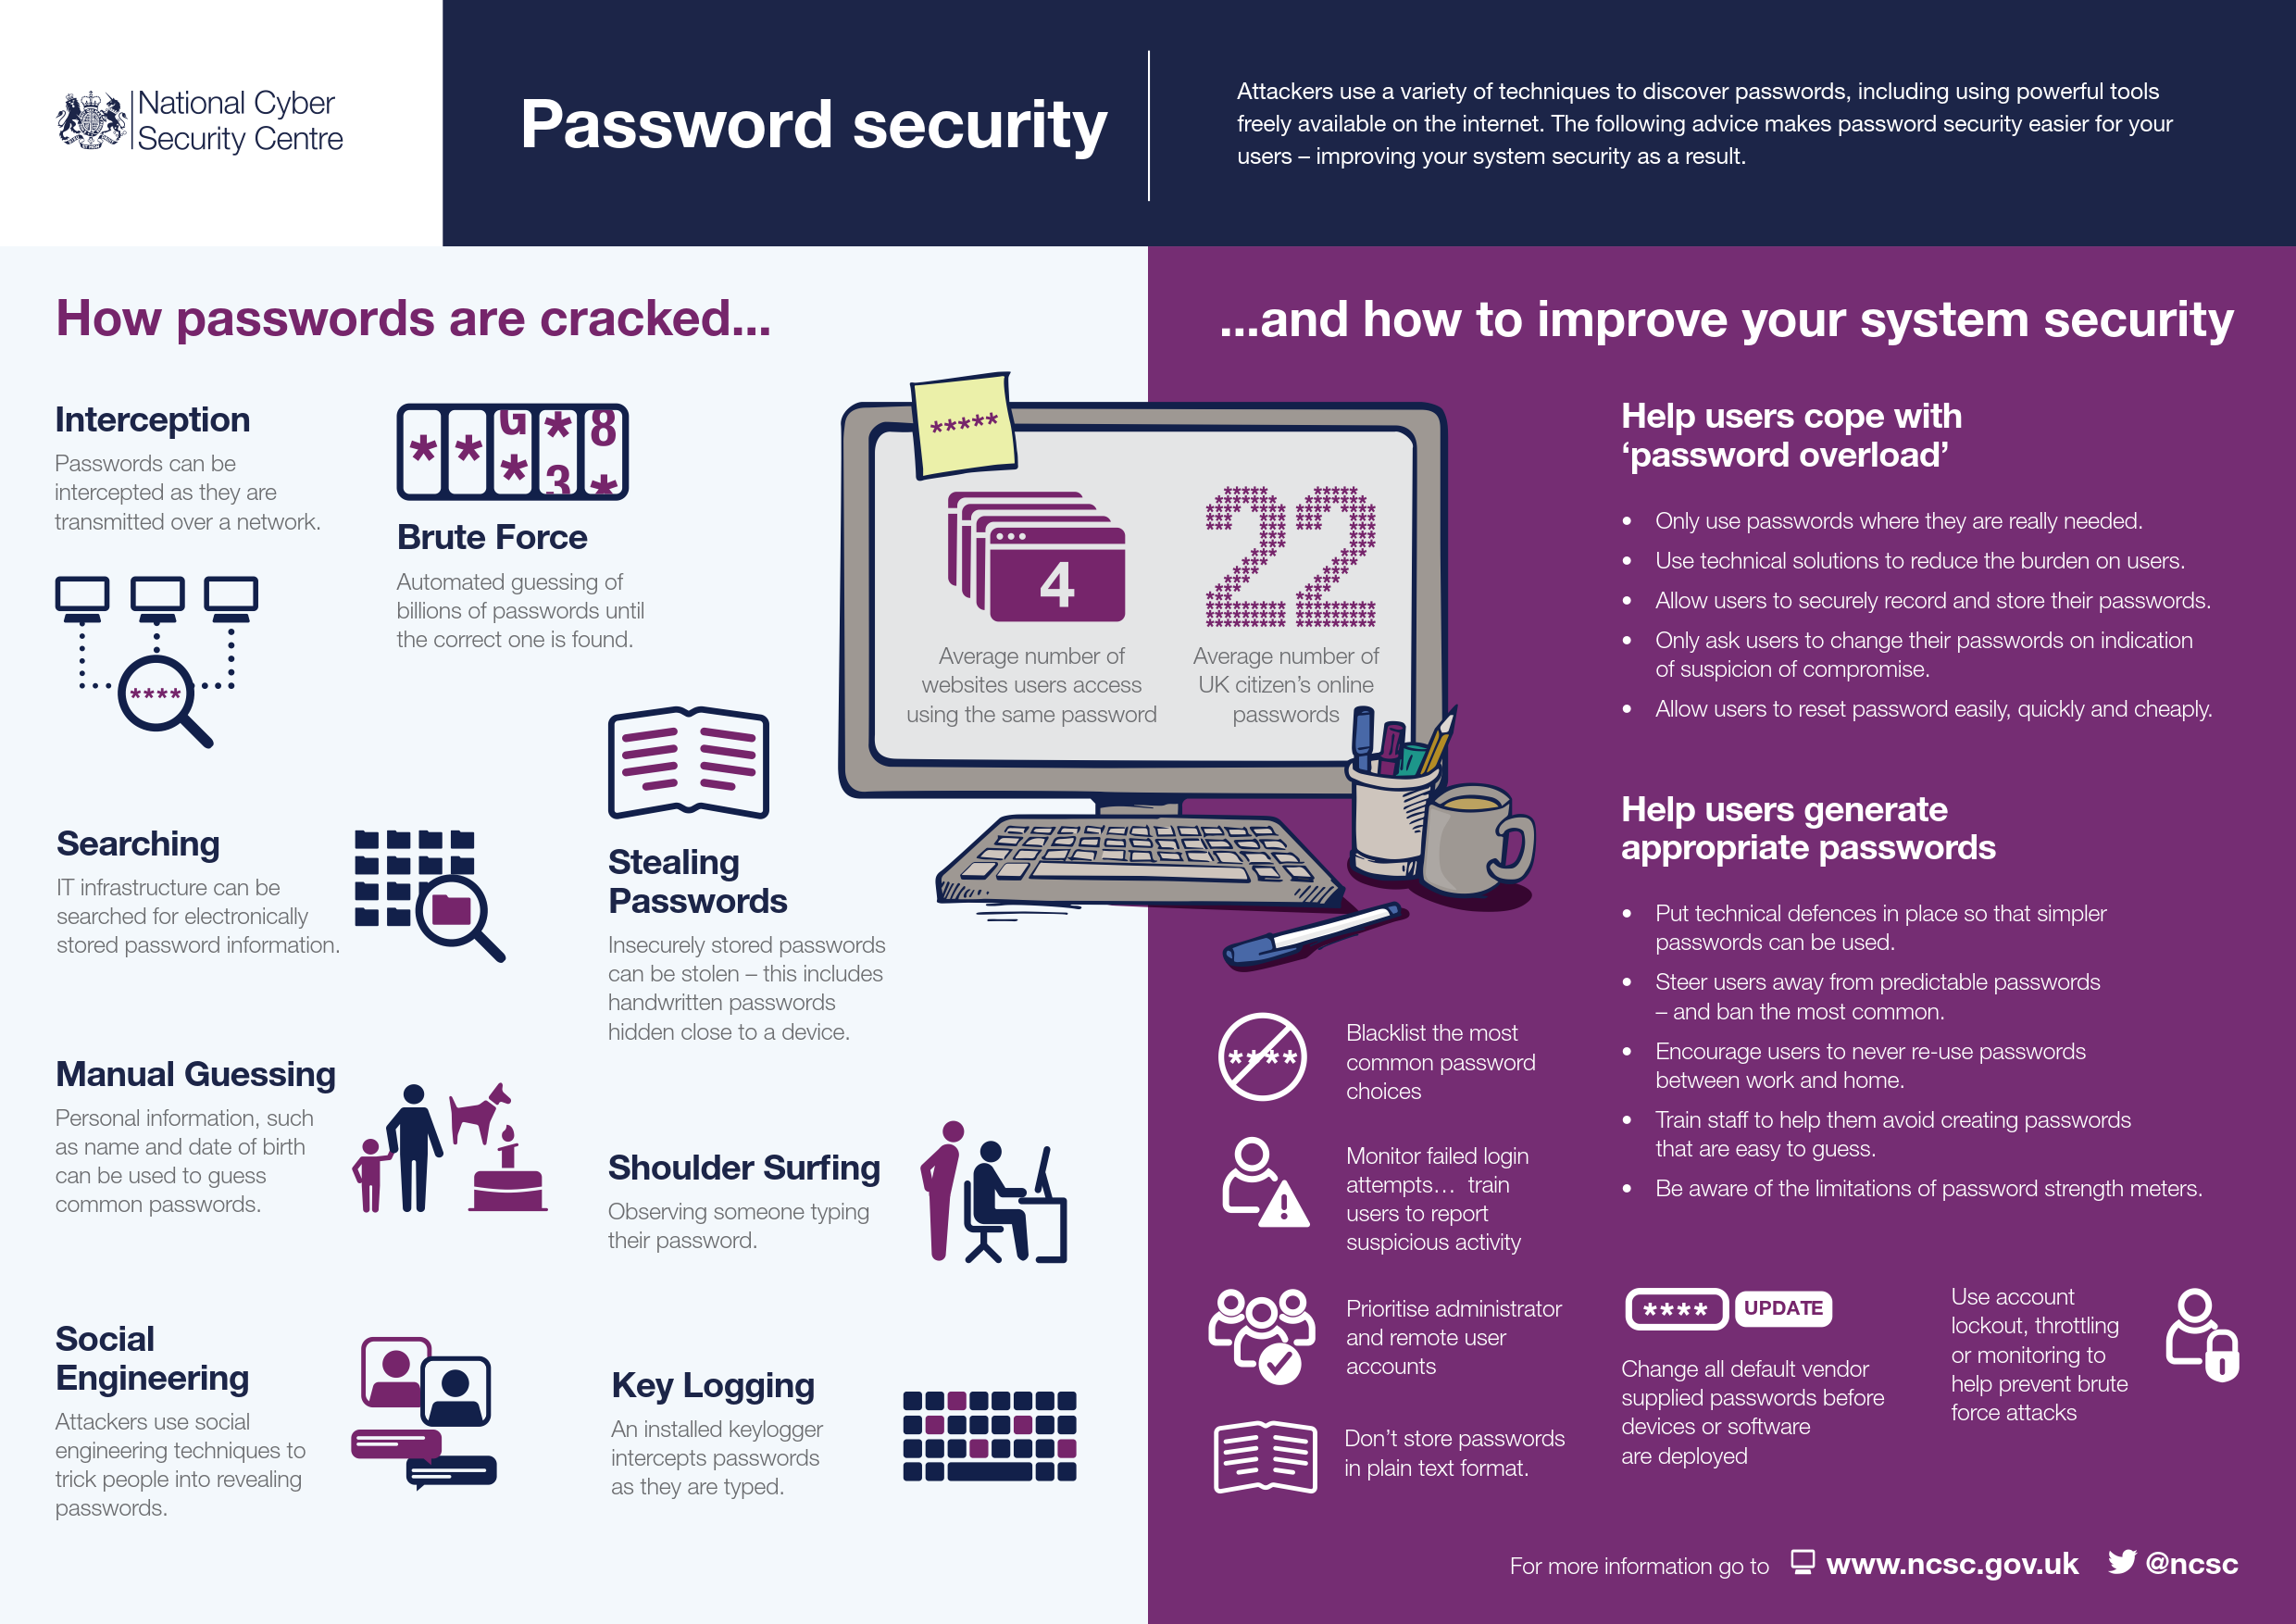 Password Security Amp Guidance From The Uk S National Cyber Security Centre